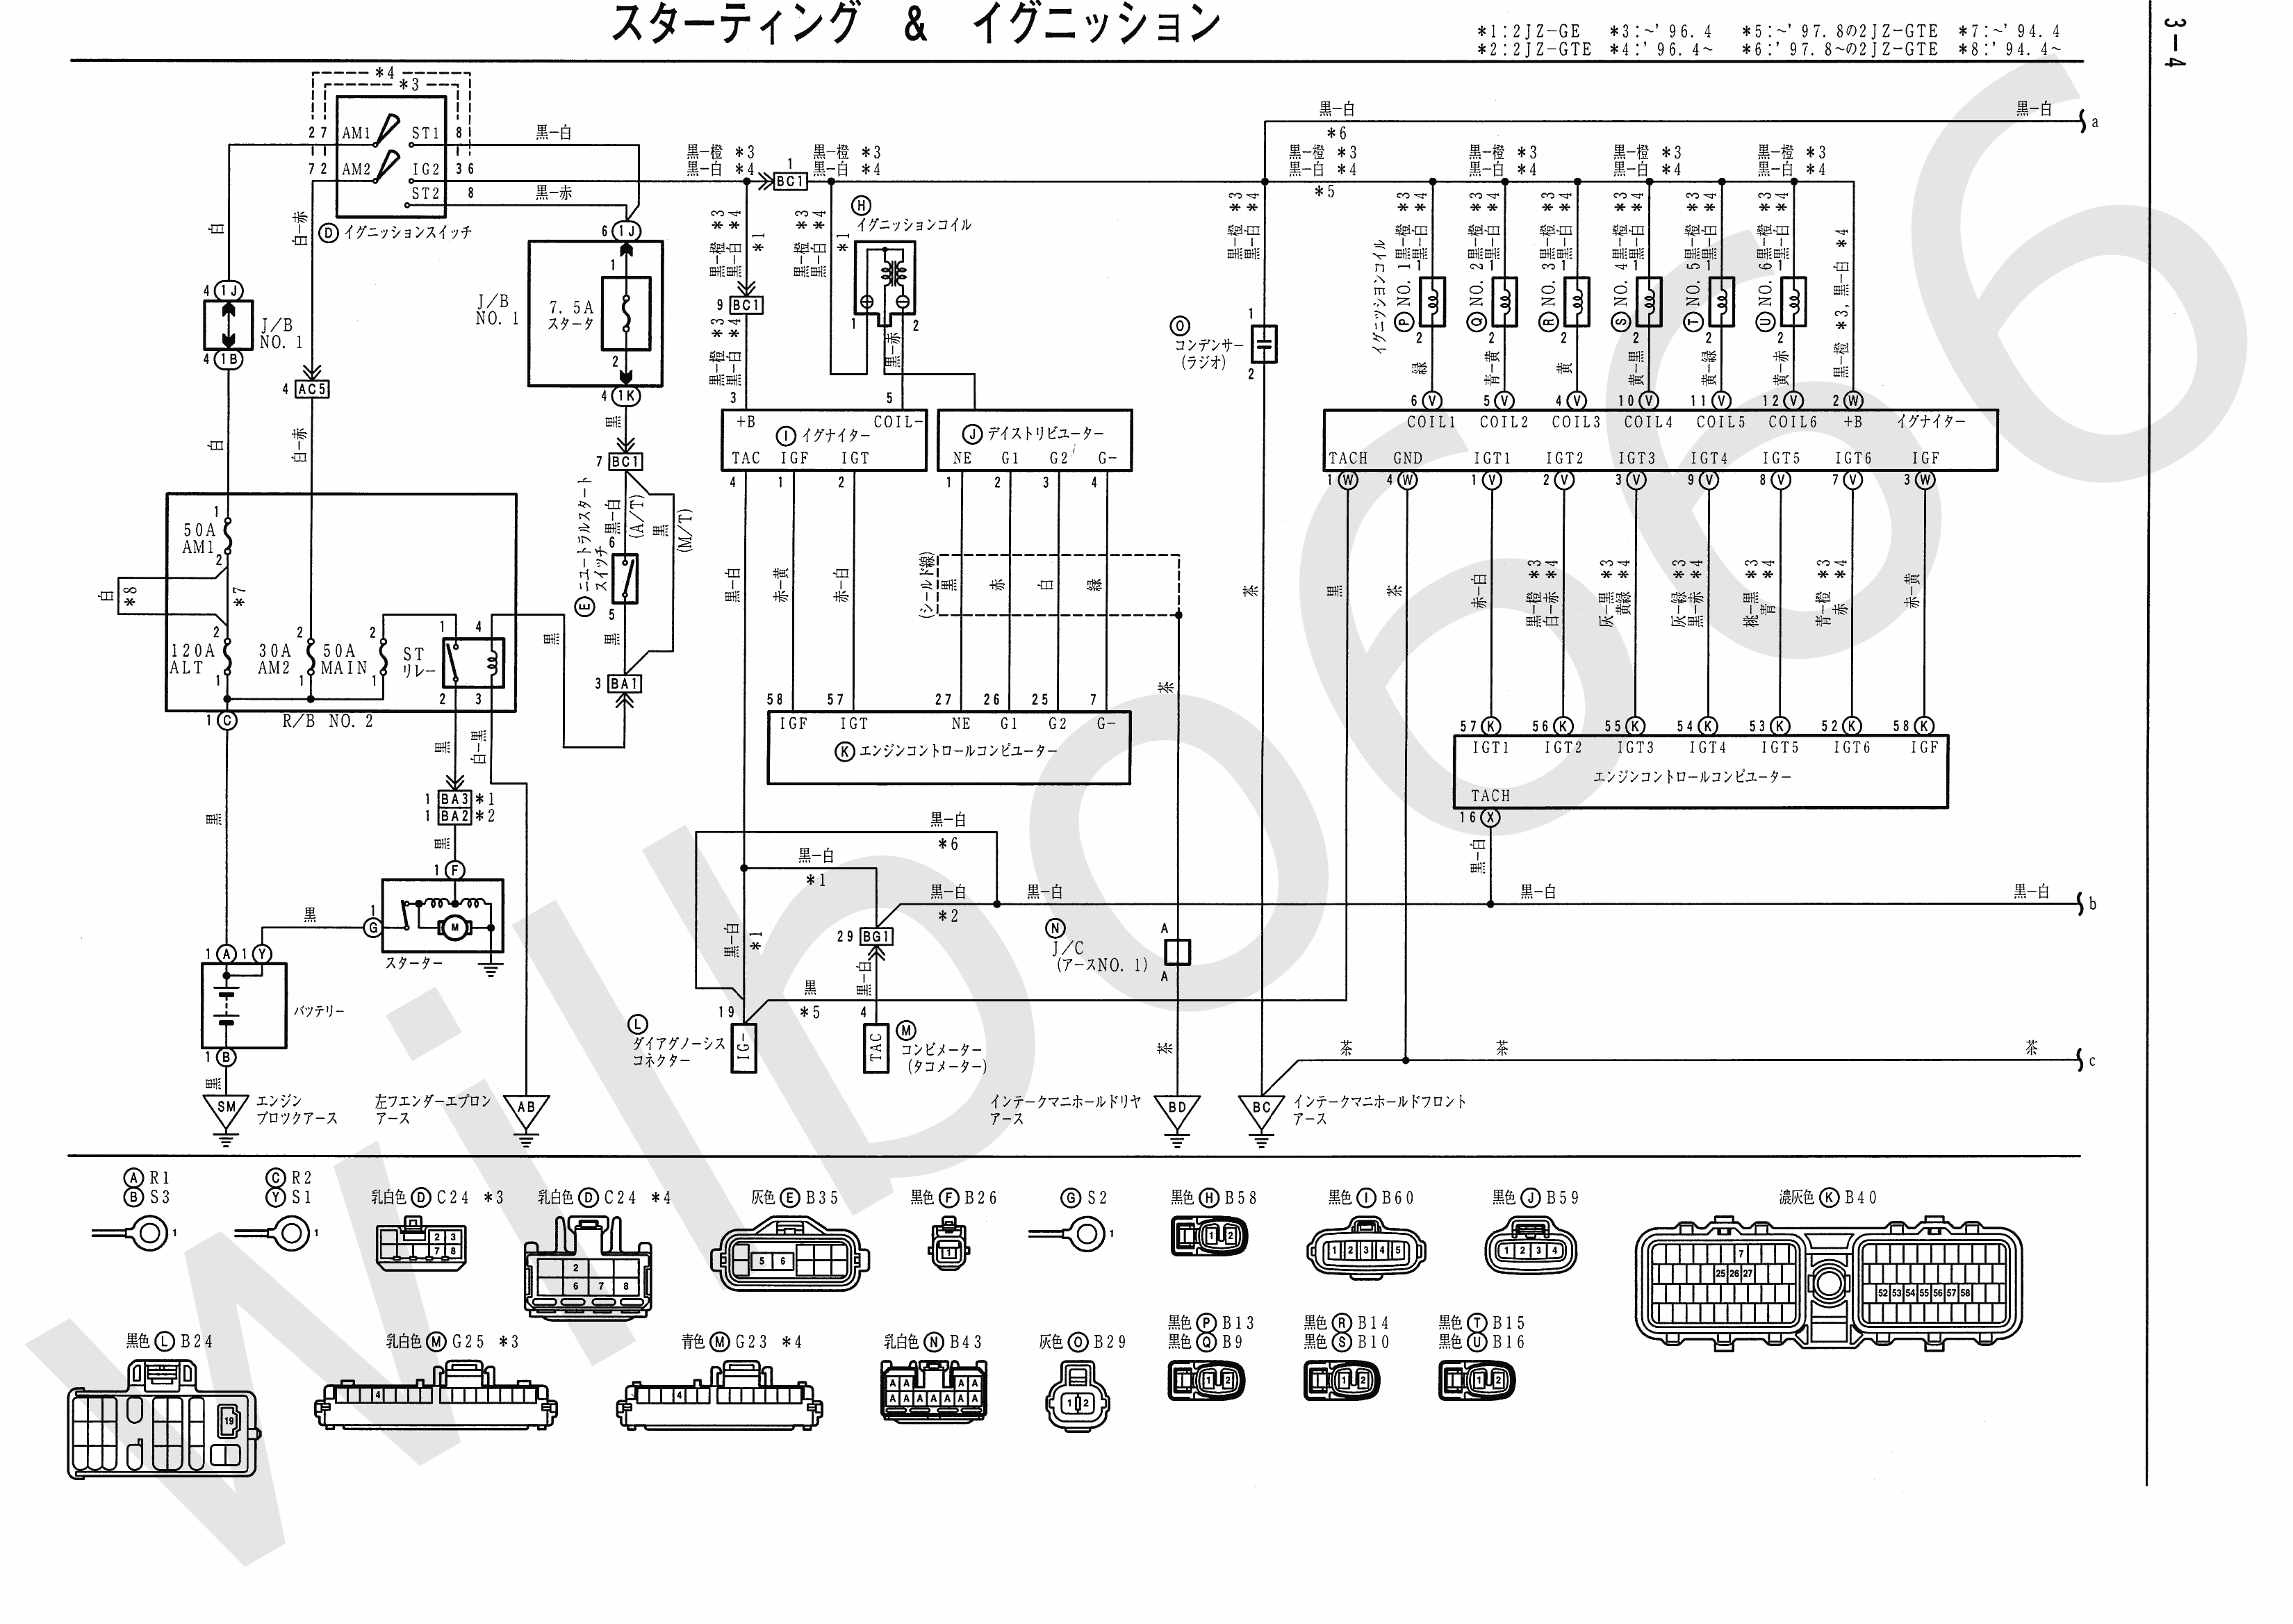 merkur xr4ti fuel pump wiring diagram route schematic wiring merkur xr4ti fuel pump wiring diagram